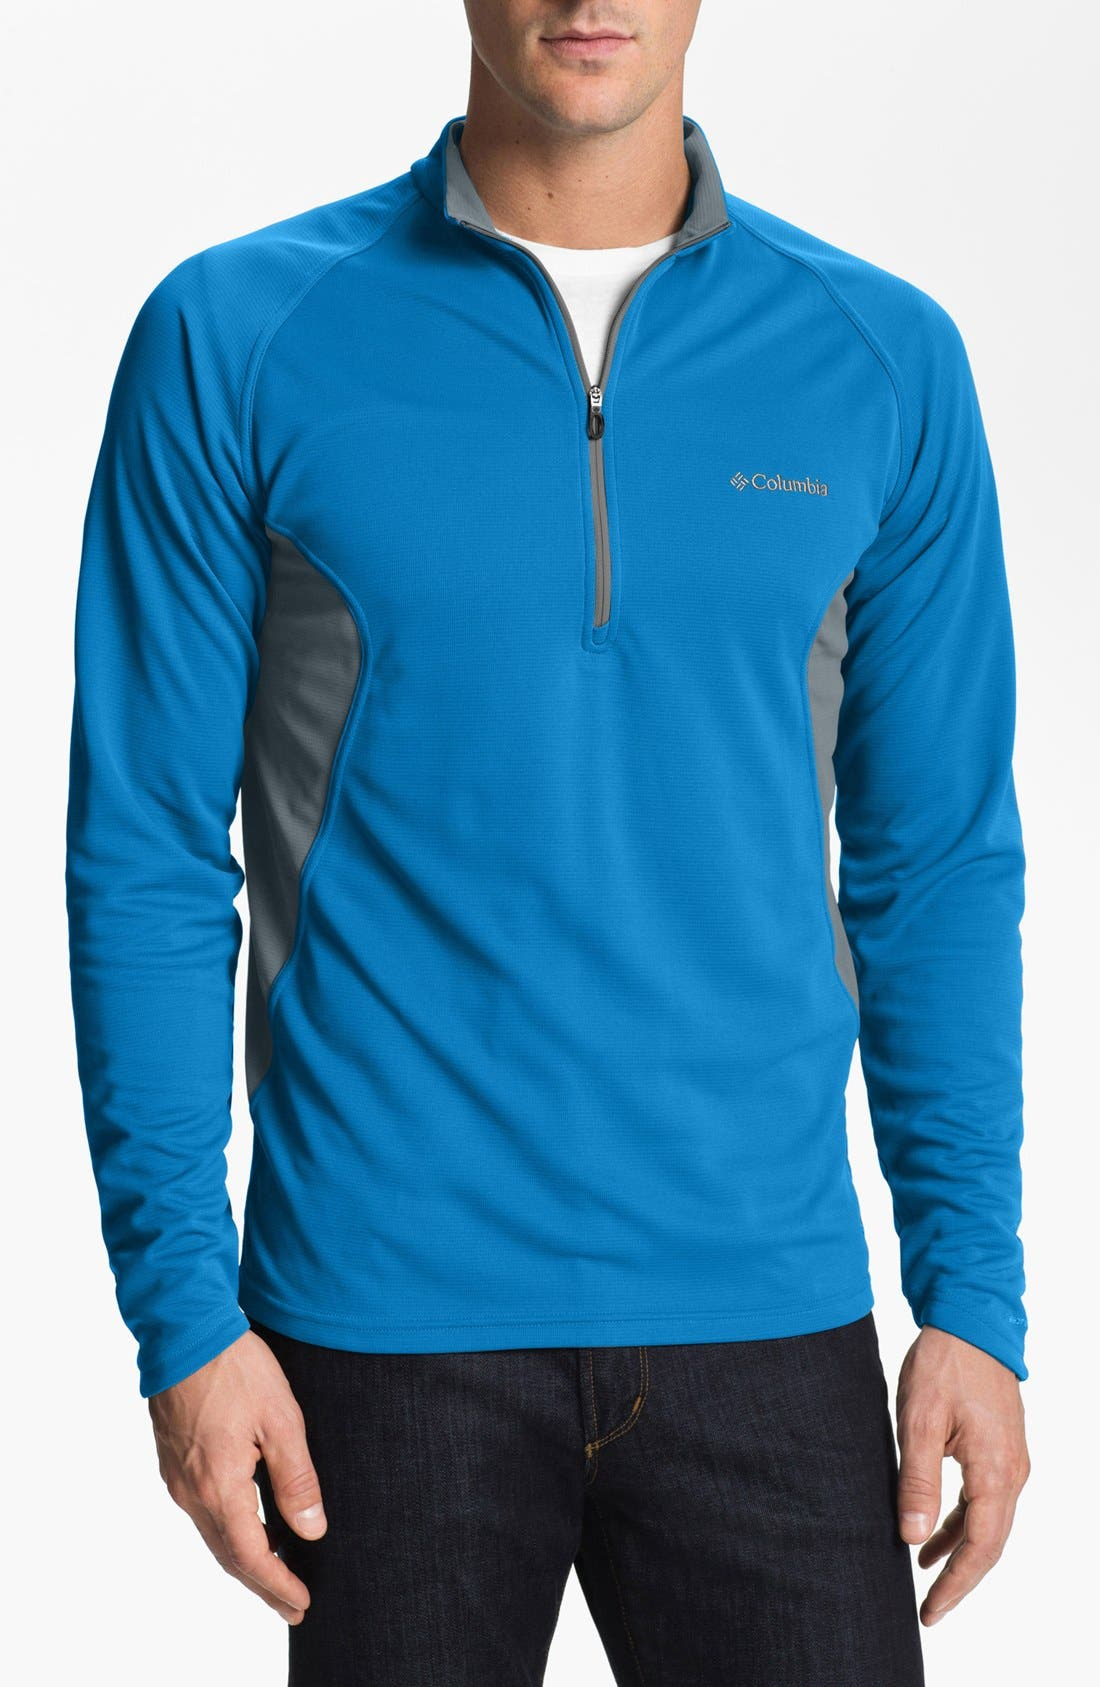 Main Image - Columbia 'Insect Blocker Sporty™' Half Zip Pullover